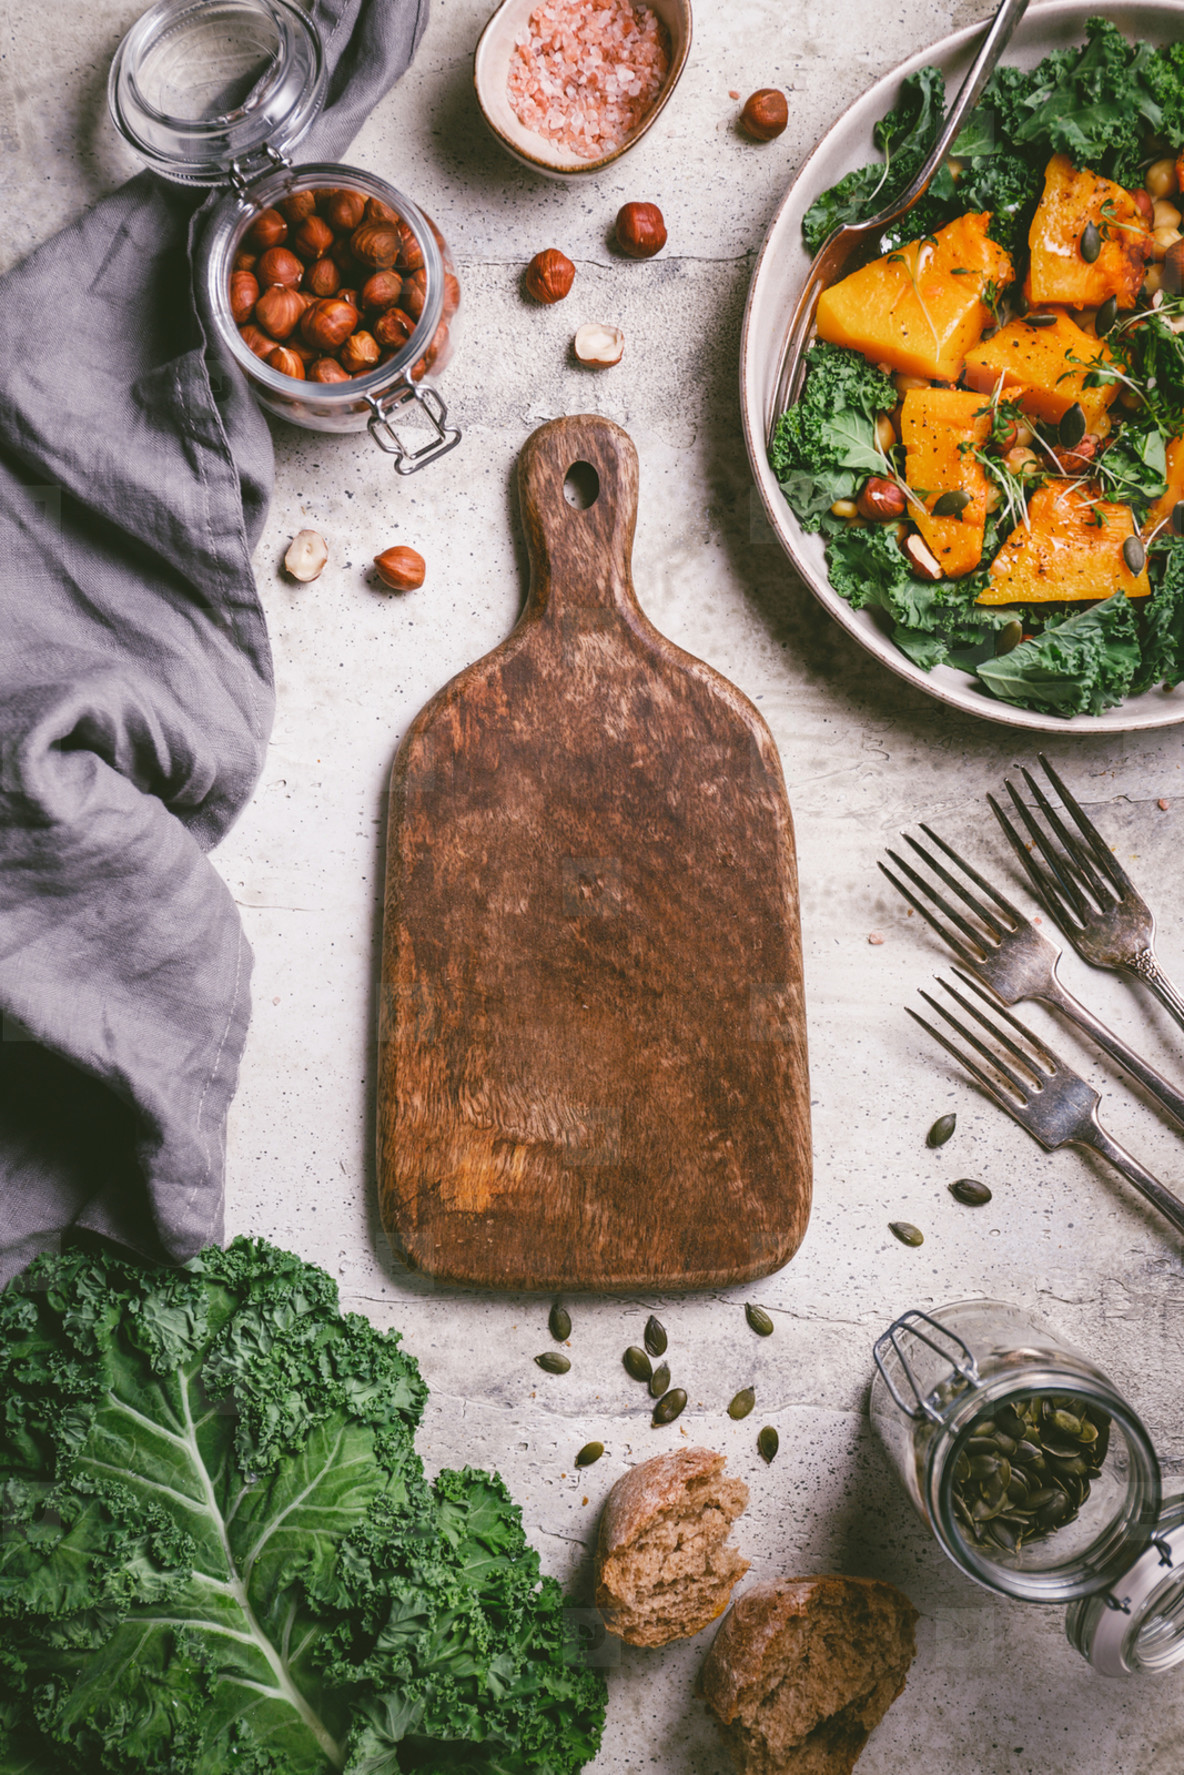 Empty wooden cutting board surrounded seasonal fall products Roasted pumpkin salad  kale  bread  nuts and seeds  Top view  food frame background